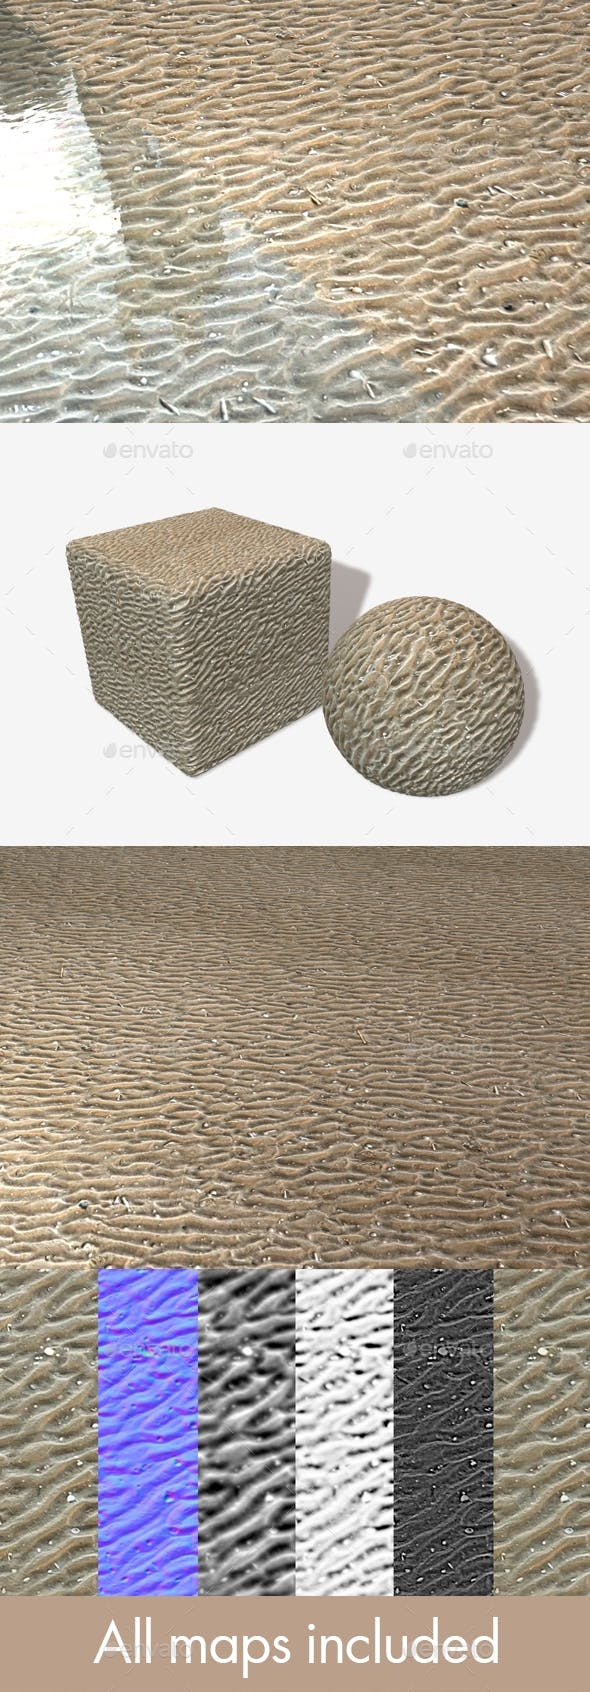 Rippled Sand Seamless Texture - 3DOcean Item for Sale